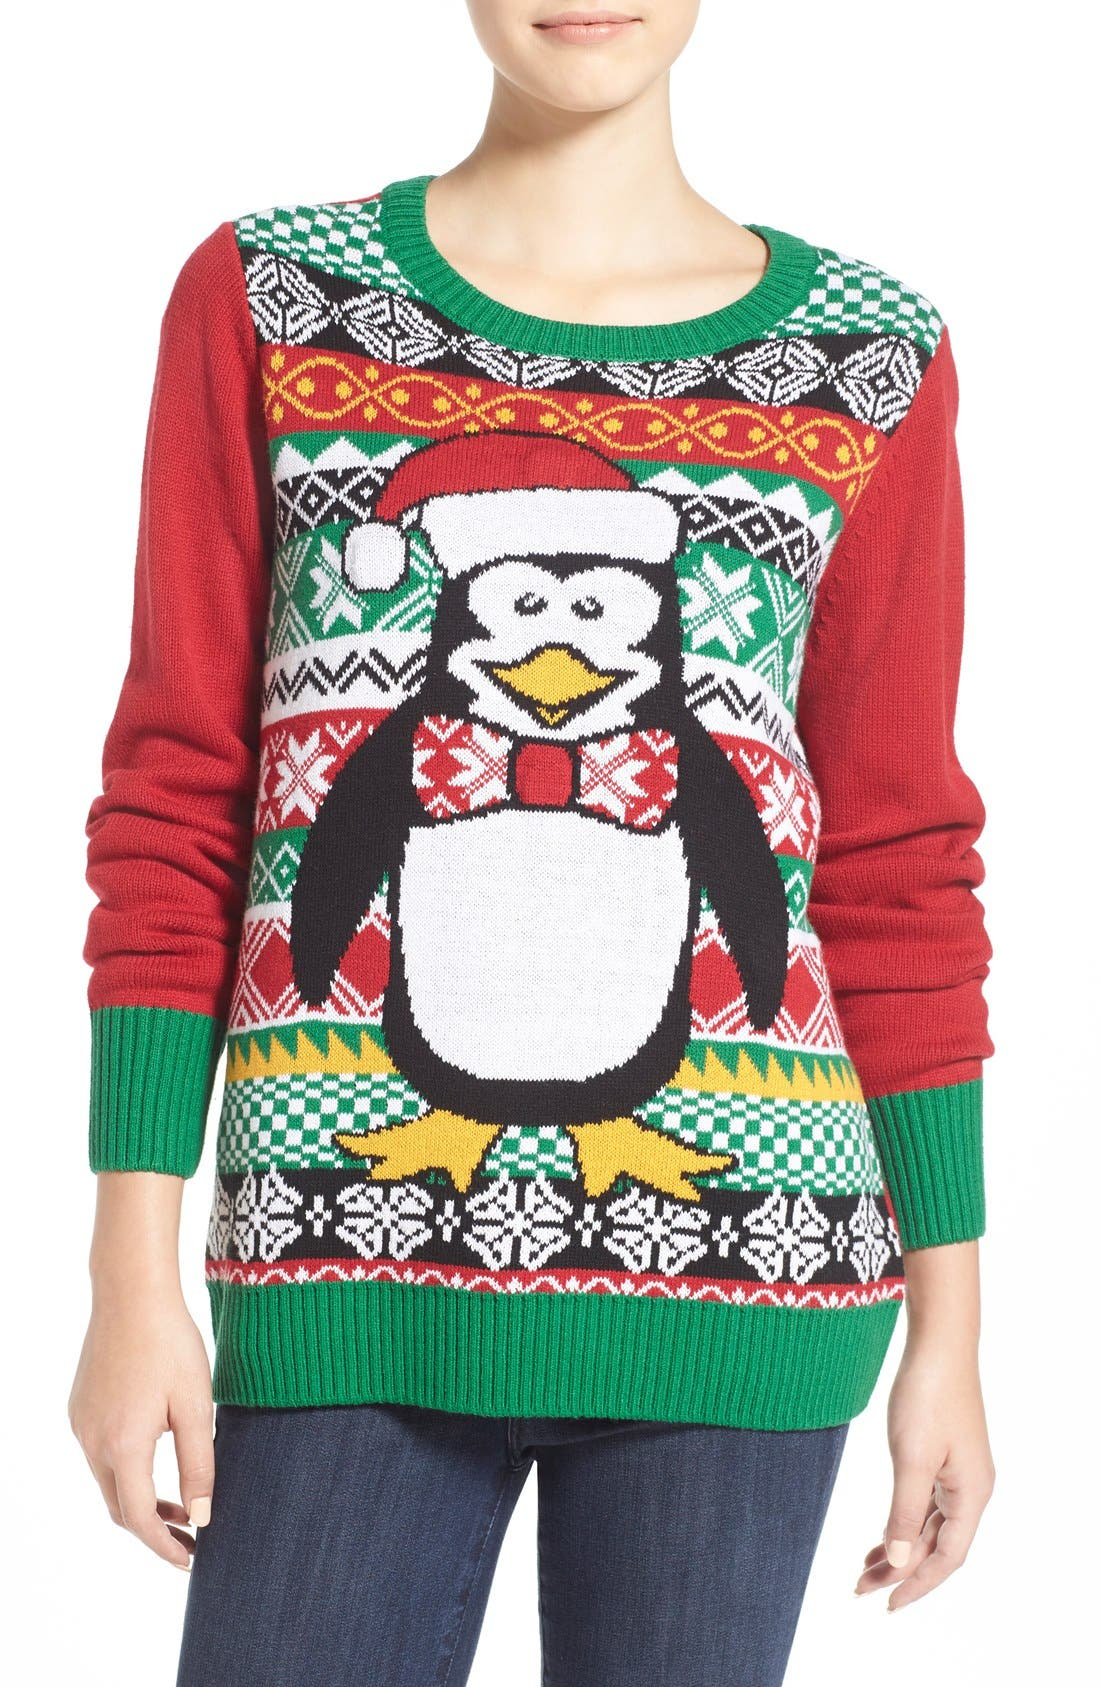 Alternate Image 1 Selected - Ugly Christmas Sweater 'Penguin' Light-Up Fair Isle Knit Sweater